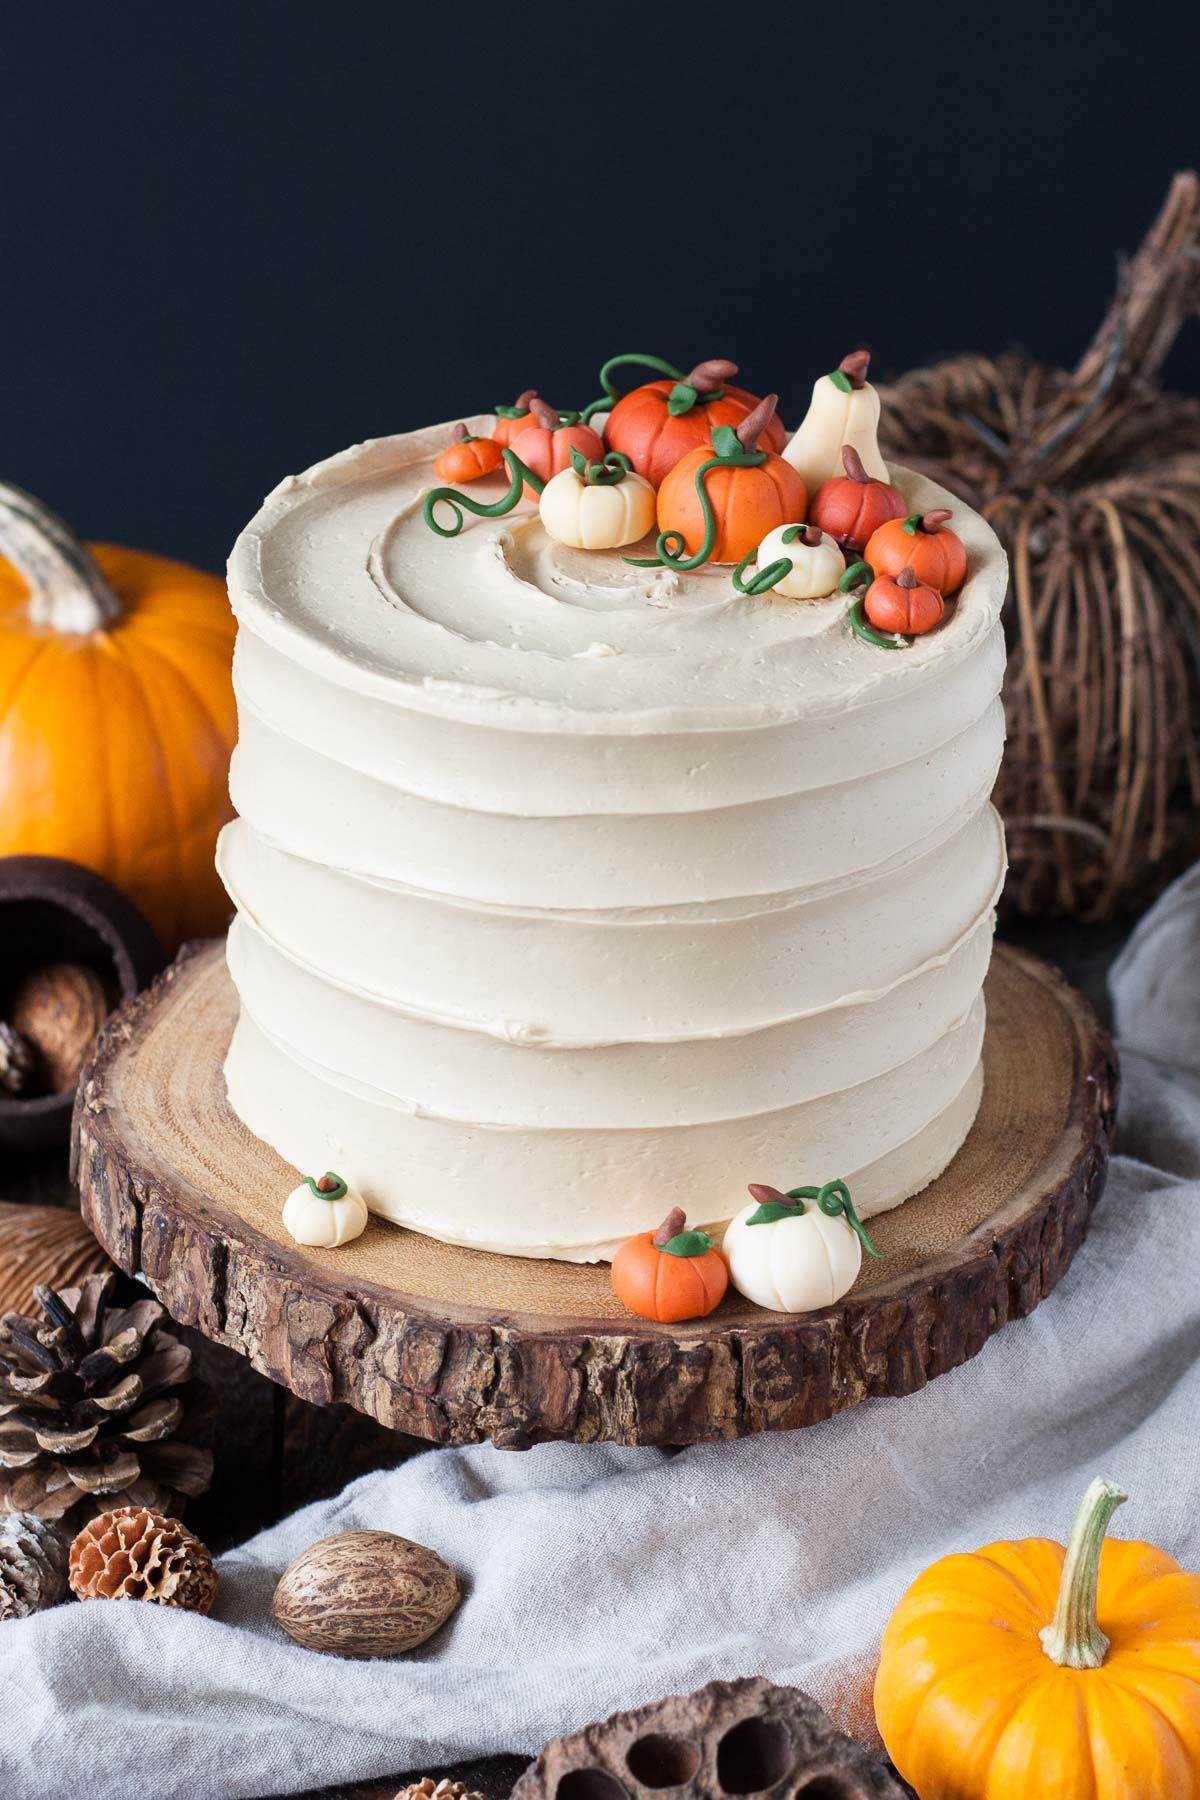 20 Best Halloween Cake Recipes & Decorating Ideas Easy